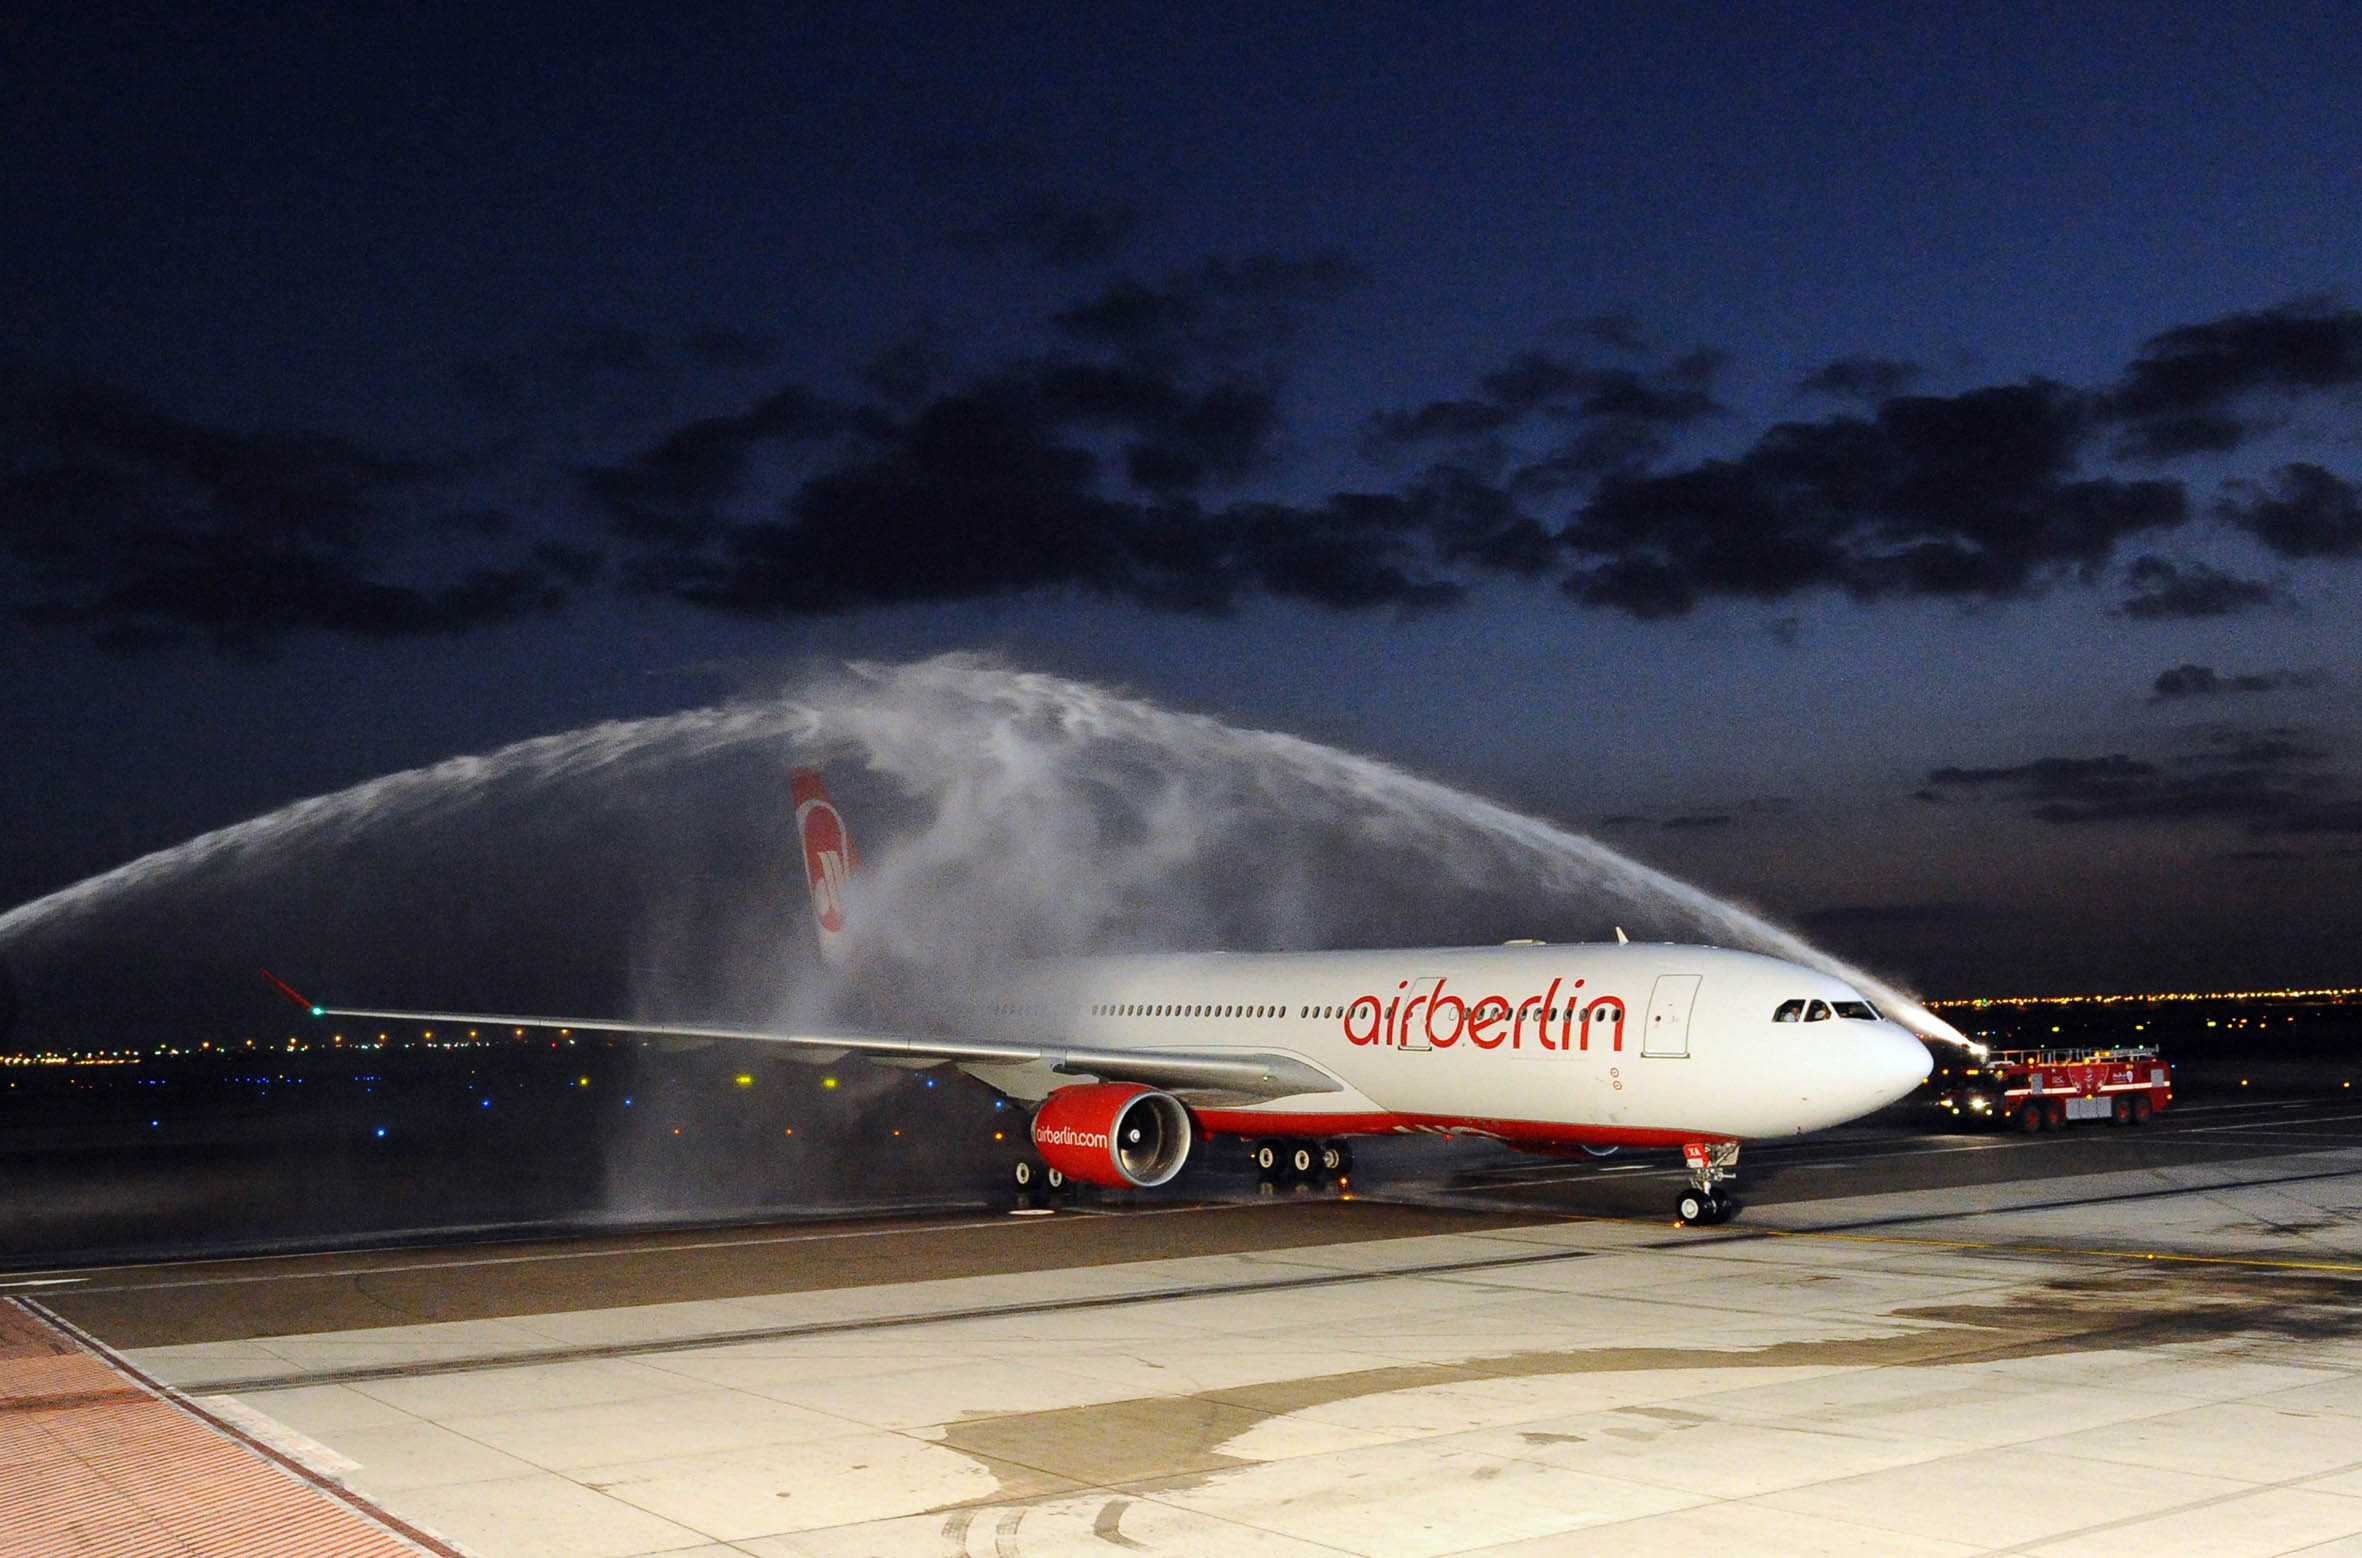 First Airberlin Flight With Airbus A330 Arrives From